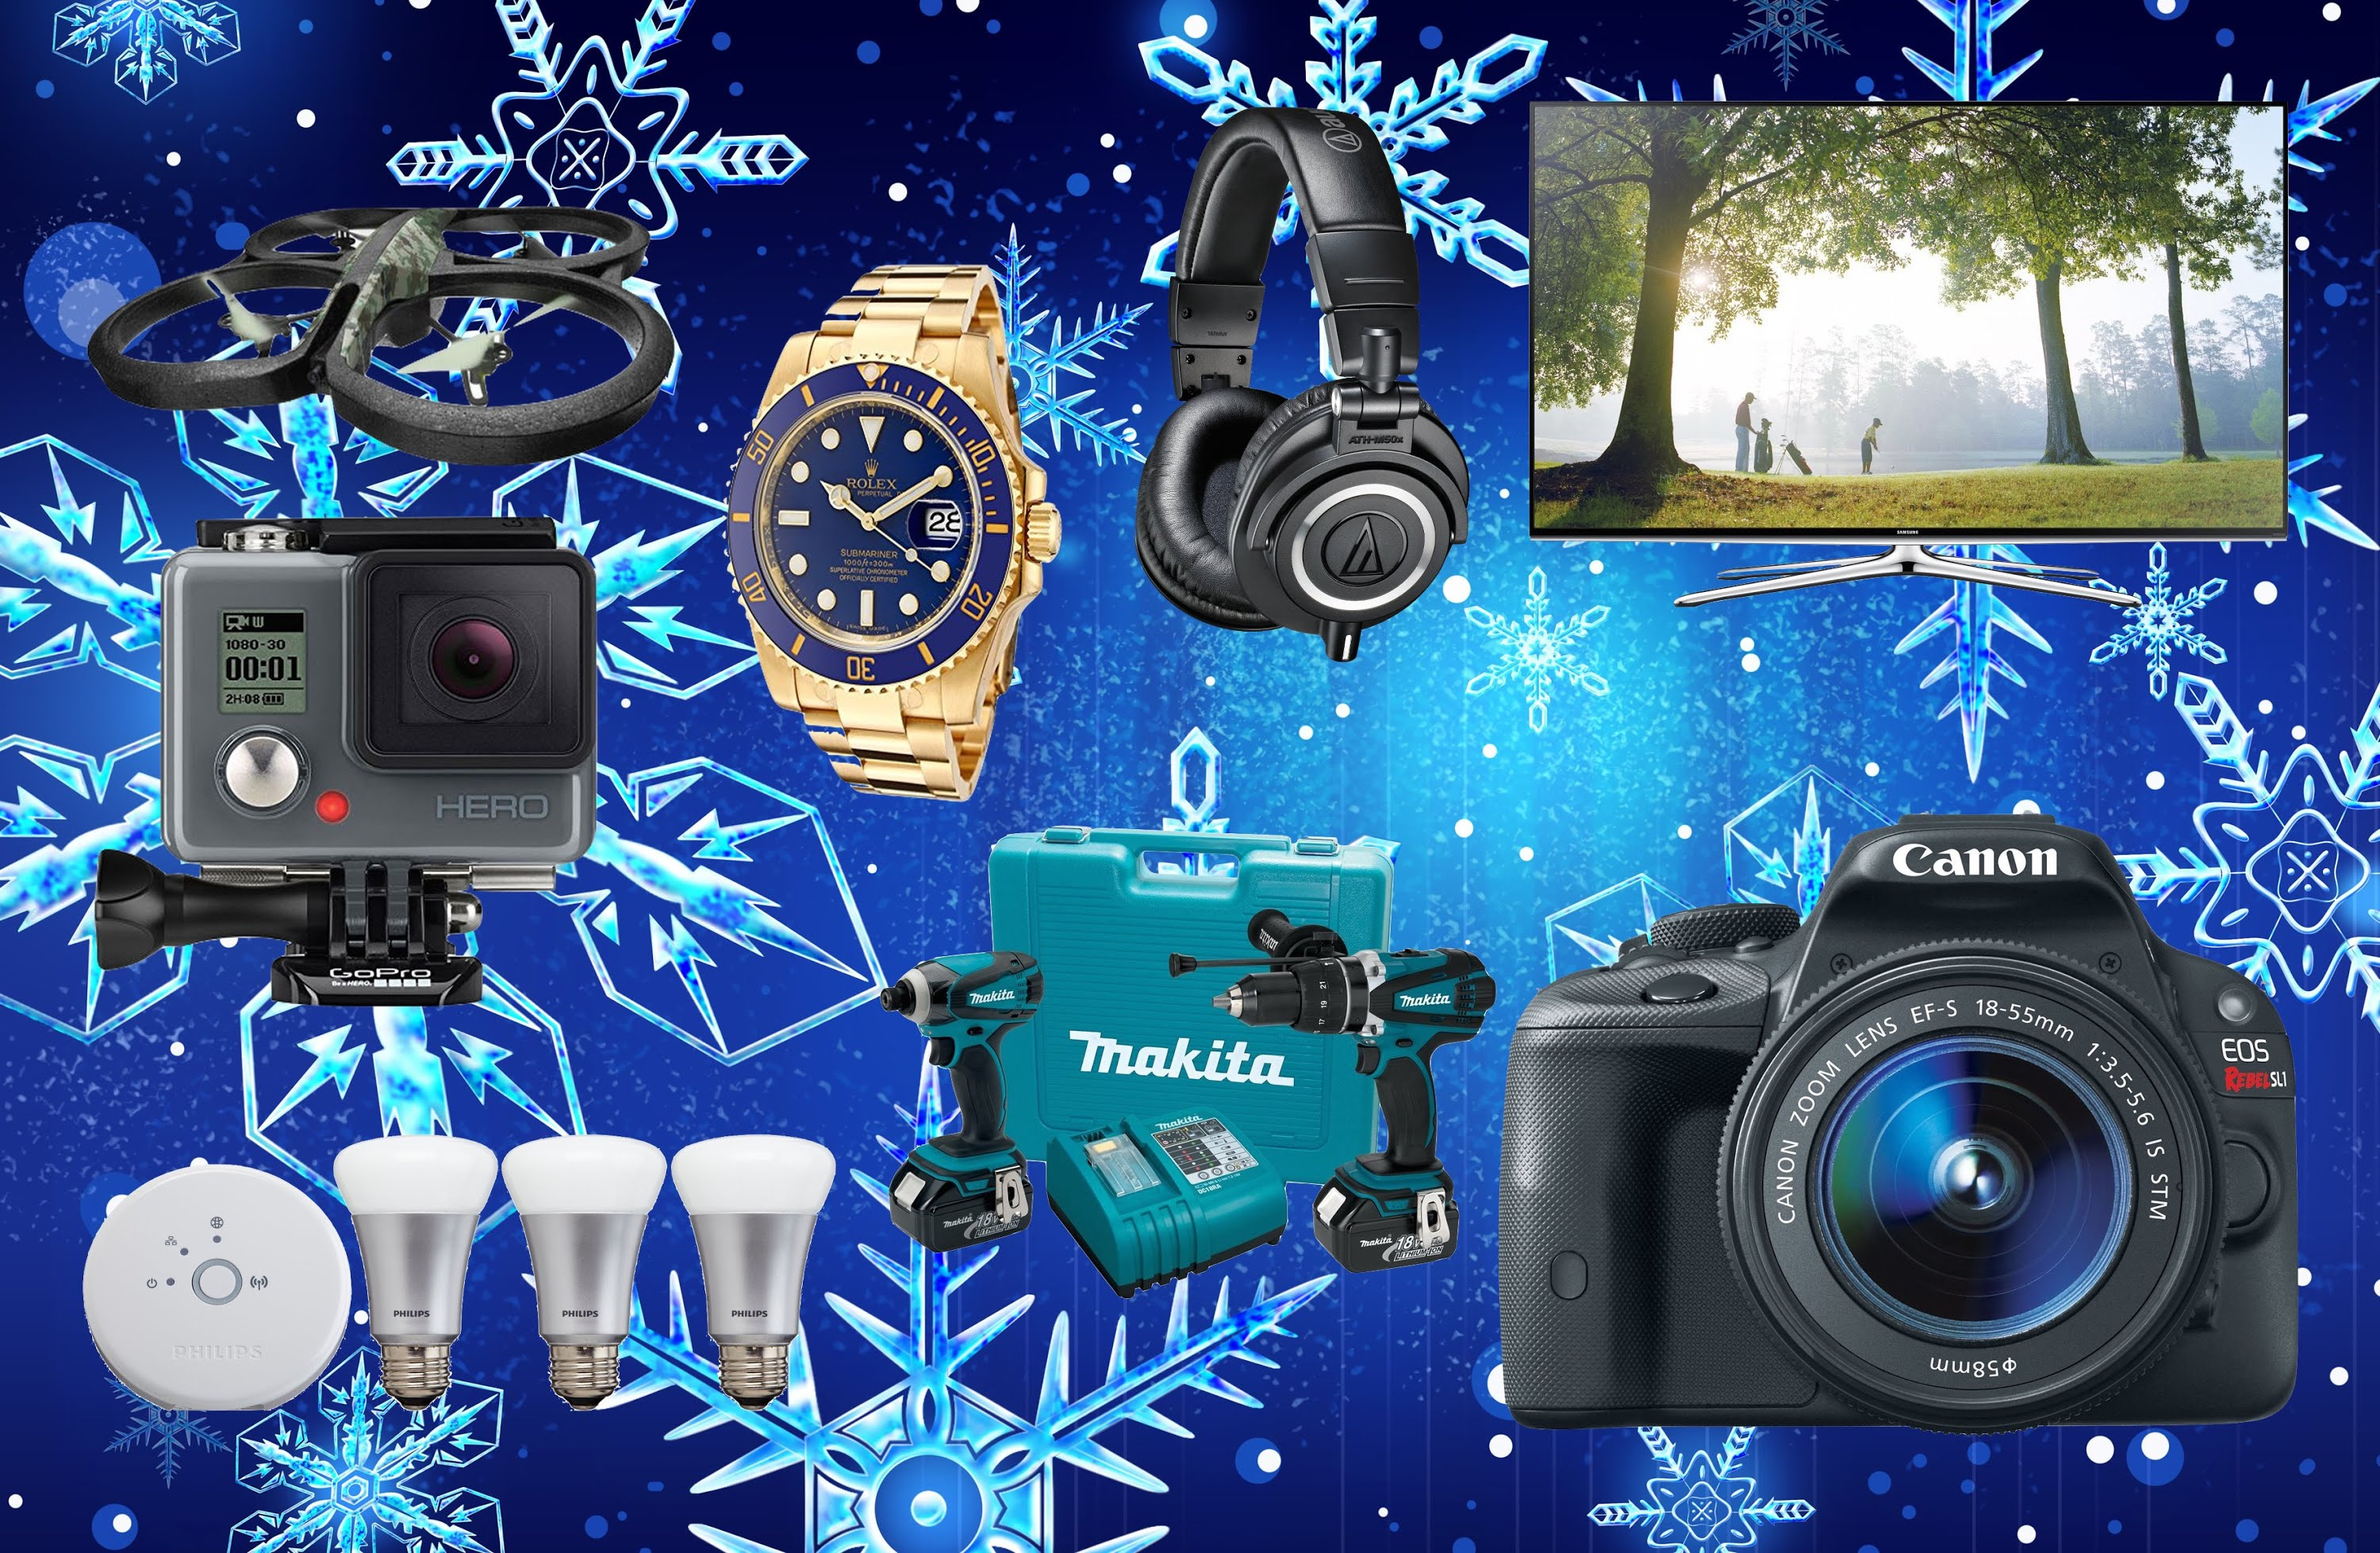 Top 100 Christmas Gifts For Teens